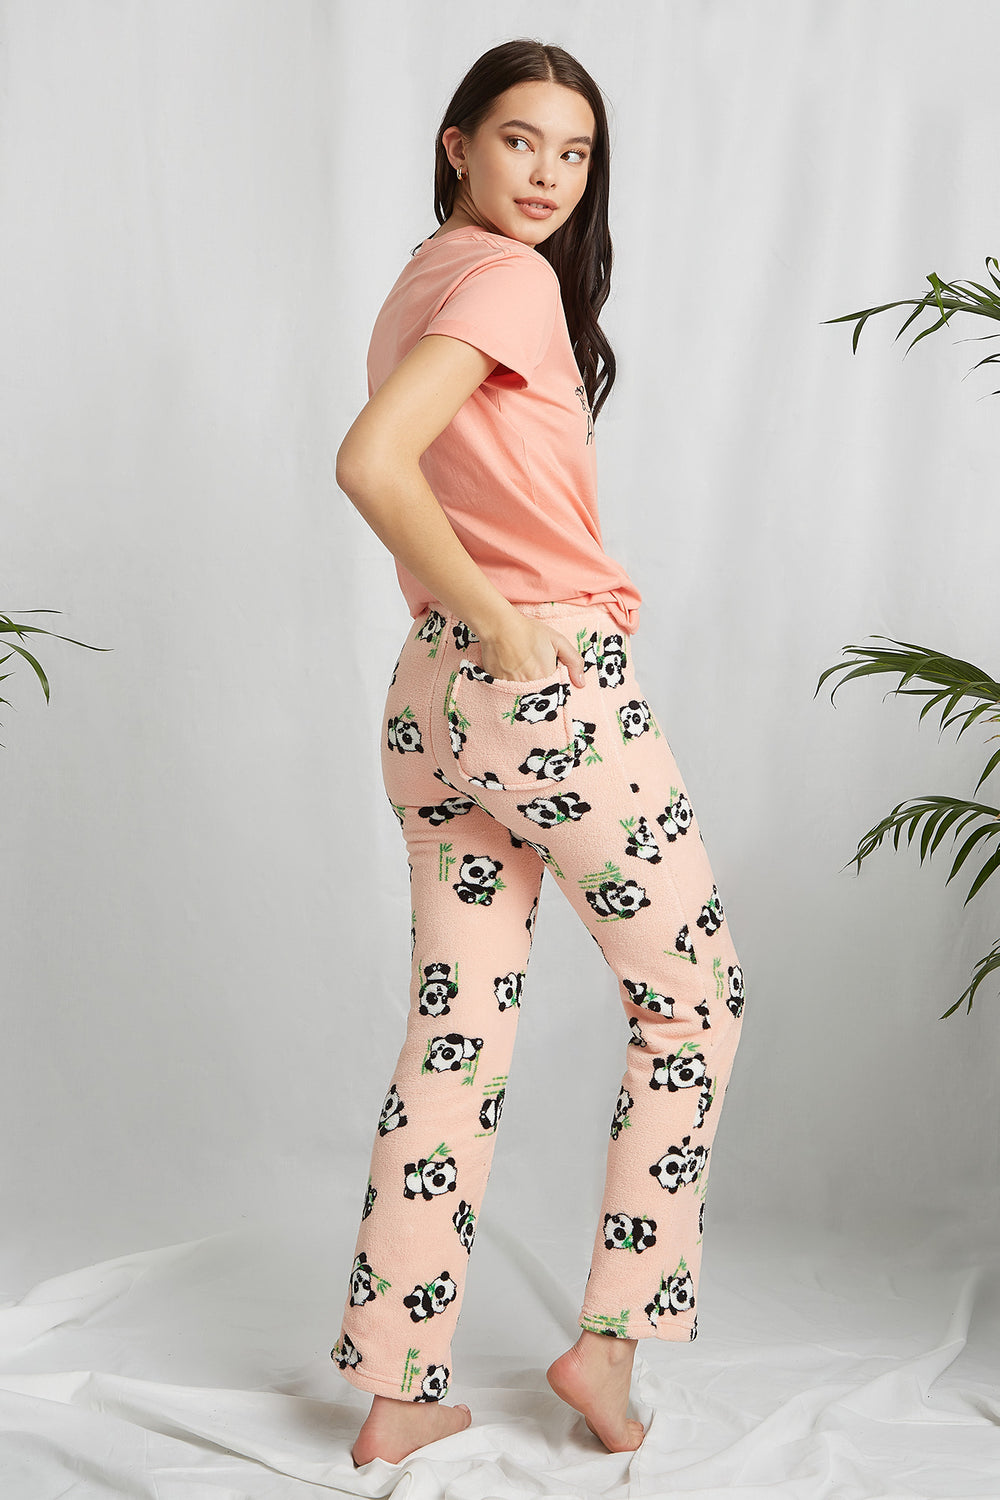 REPREVE® Eco-Friendly Recycled Polyester Graphic Pajama Pant Pink